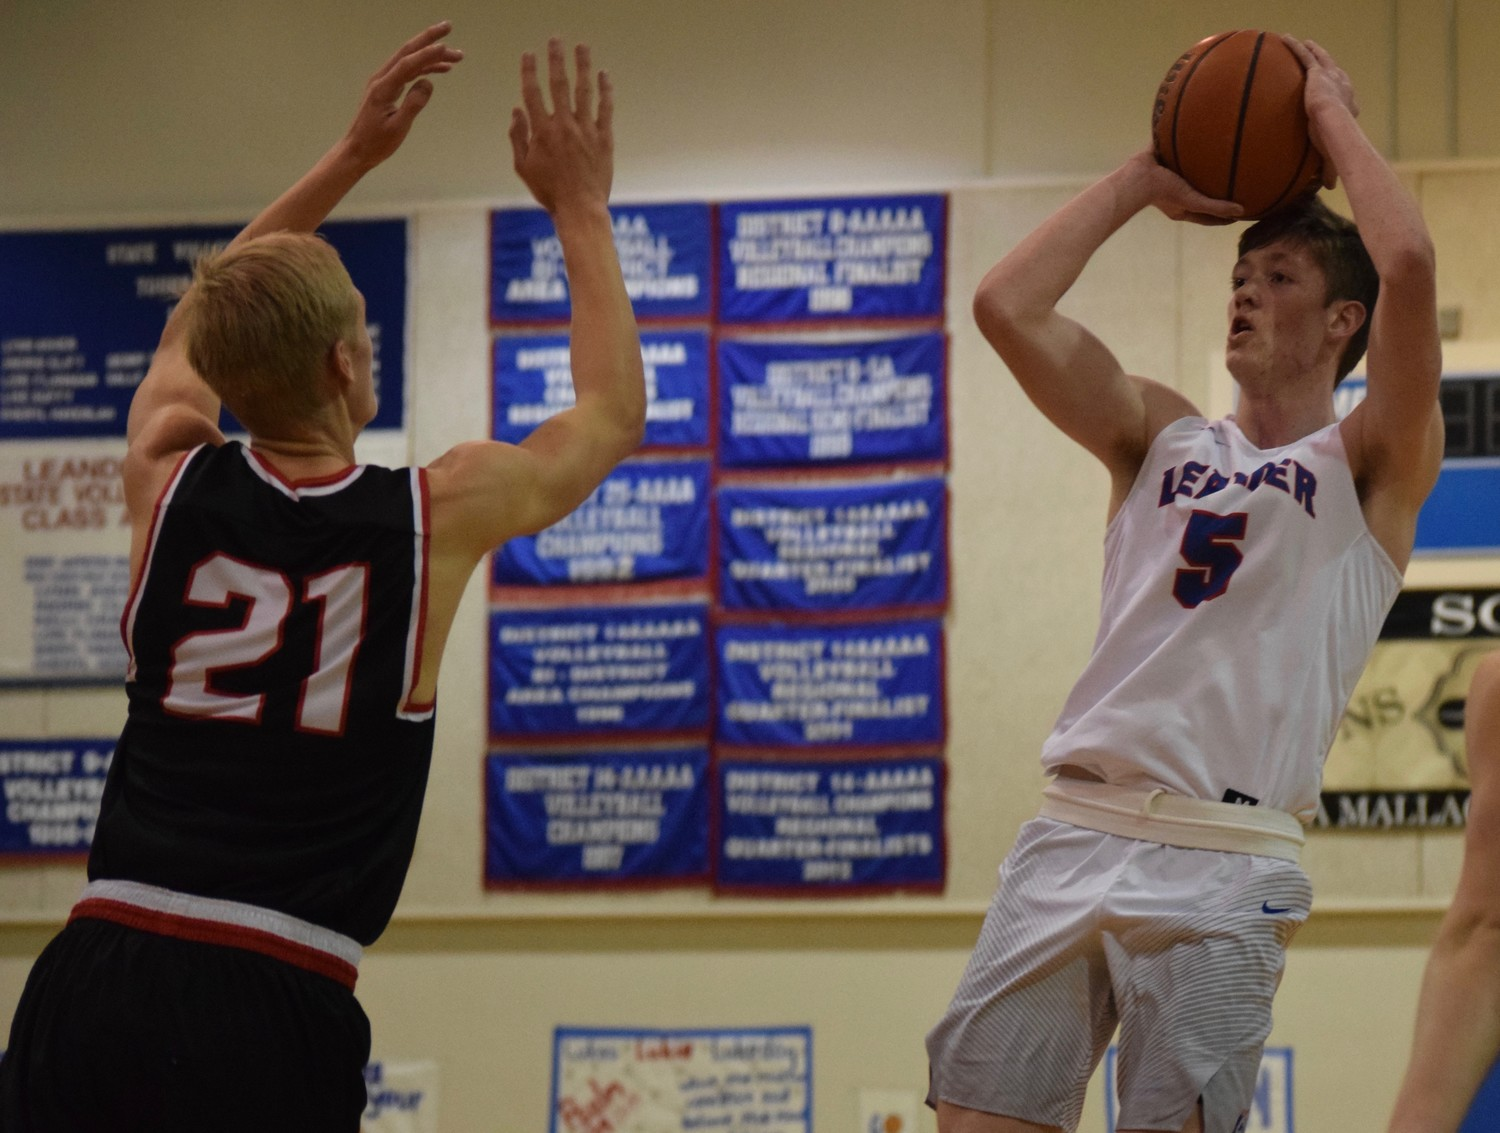 Hunter Stevens scored 15 points but Leander lost to Lake Travis 49-45 at home Friday night.